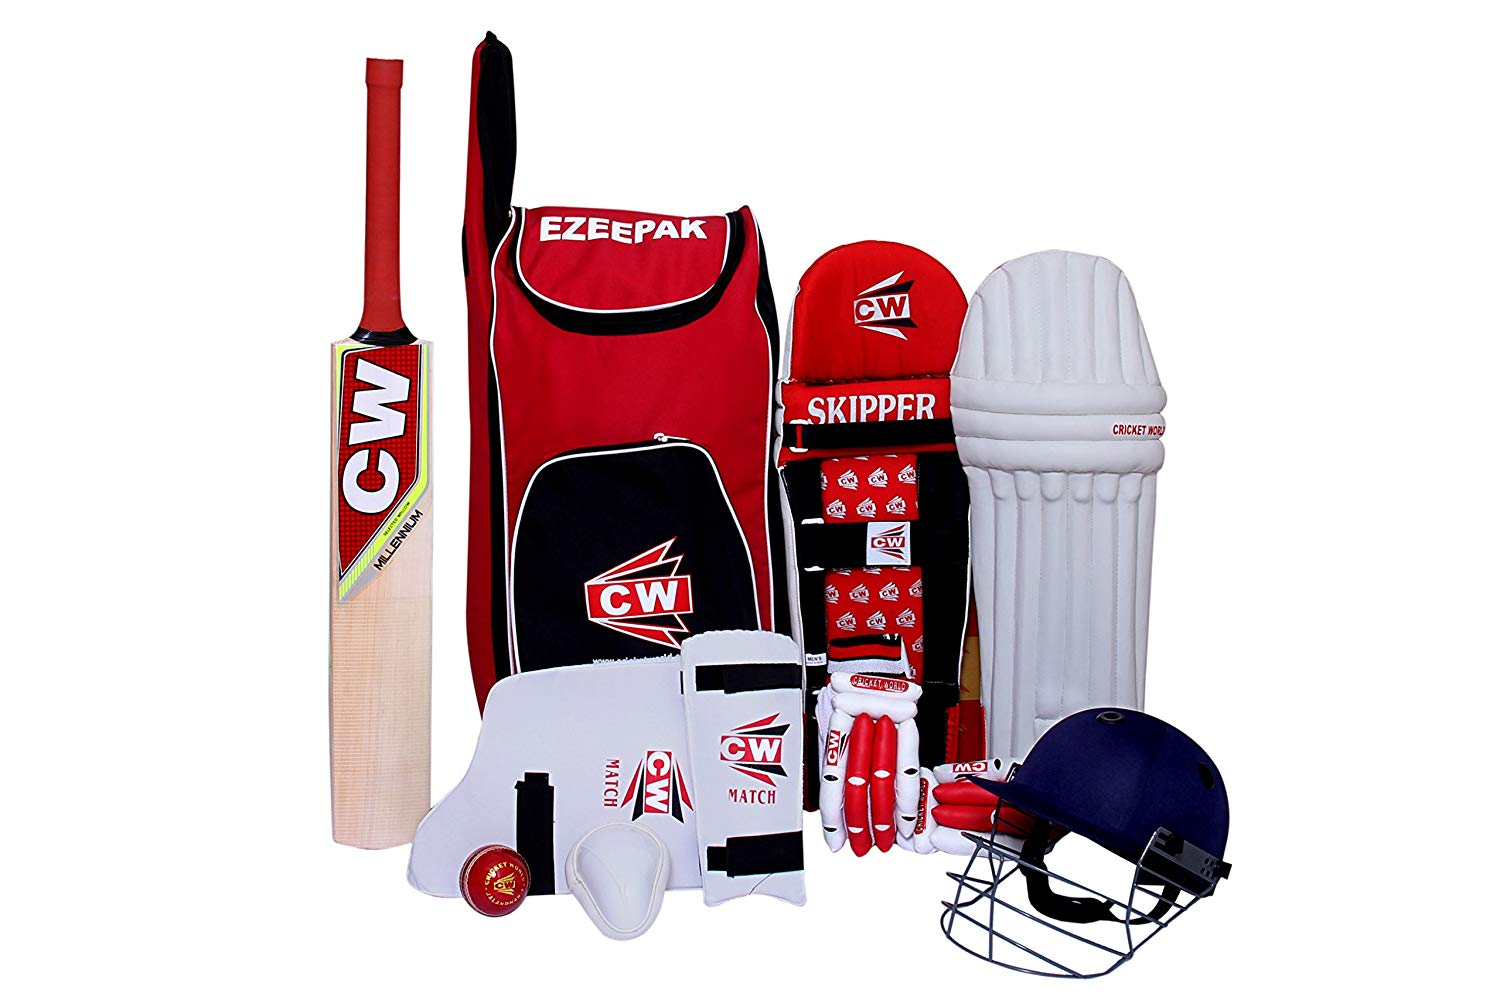 C&W Sports Cricket Kit Red Combo Batting Kit Set Equipment Premium Quality For Practice & Club Matches With Short Handle Kashmir Willow Millennium Cricket Bat